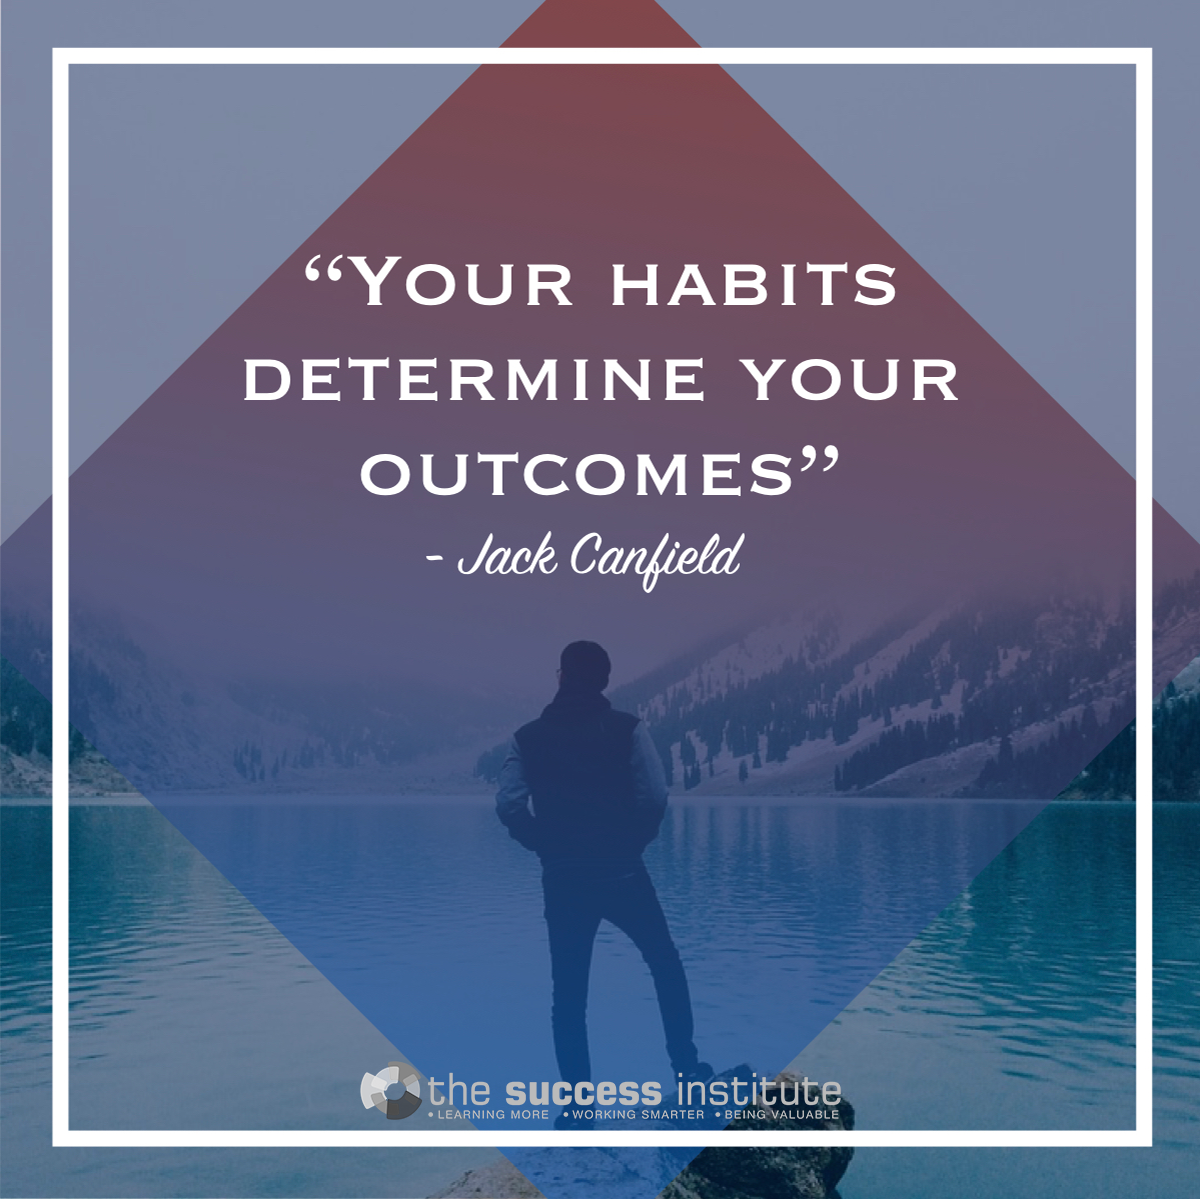 Your habits determine your outcomes.